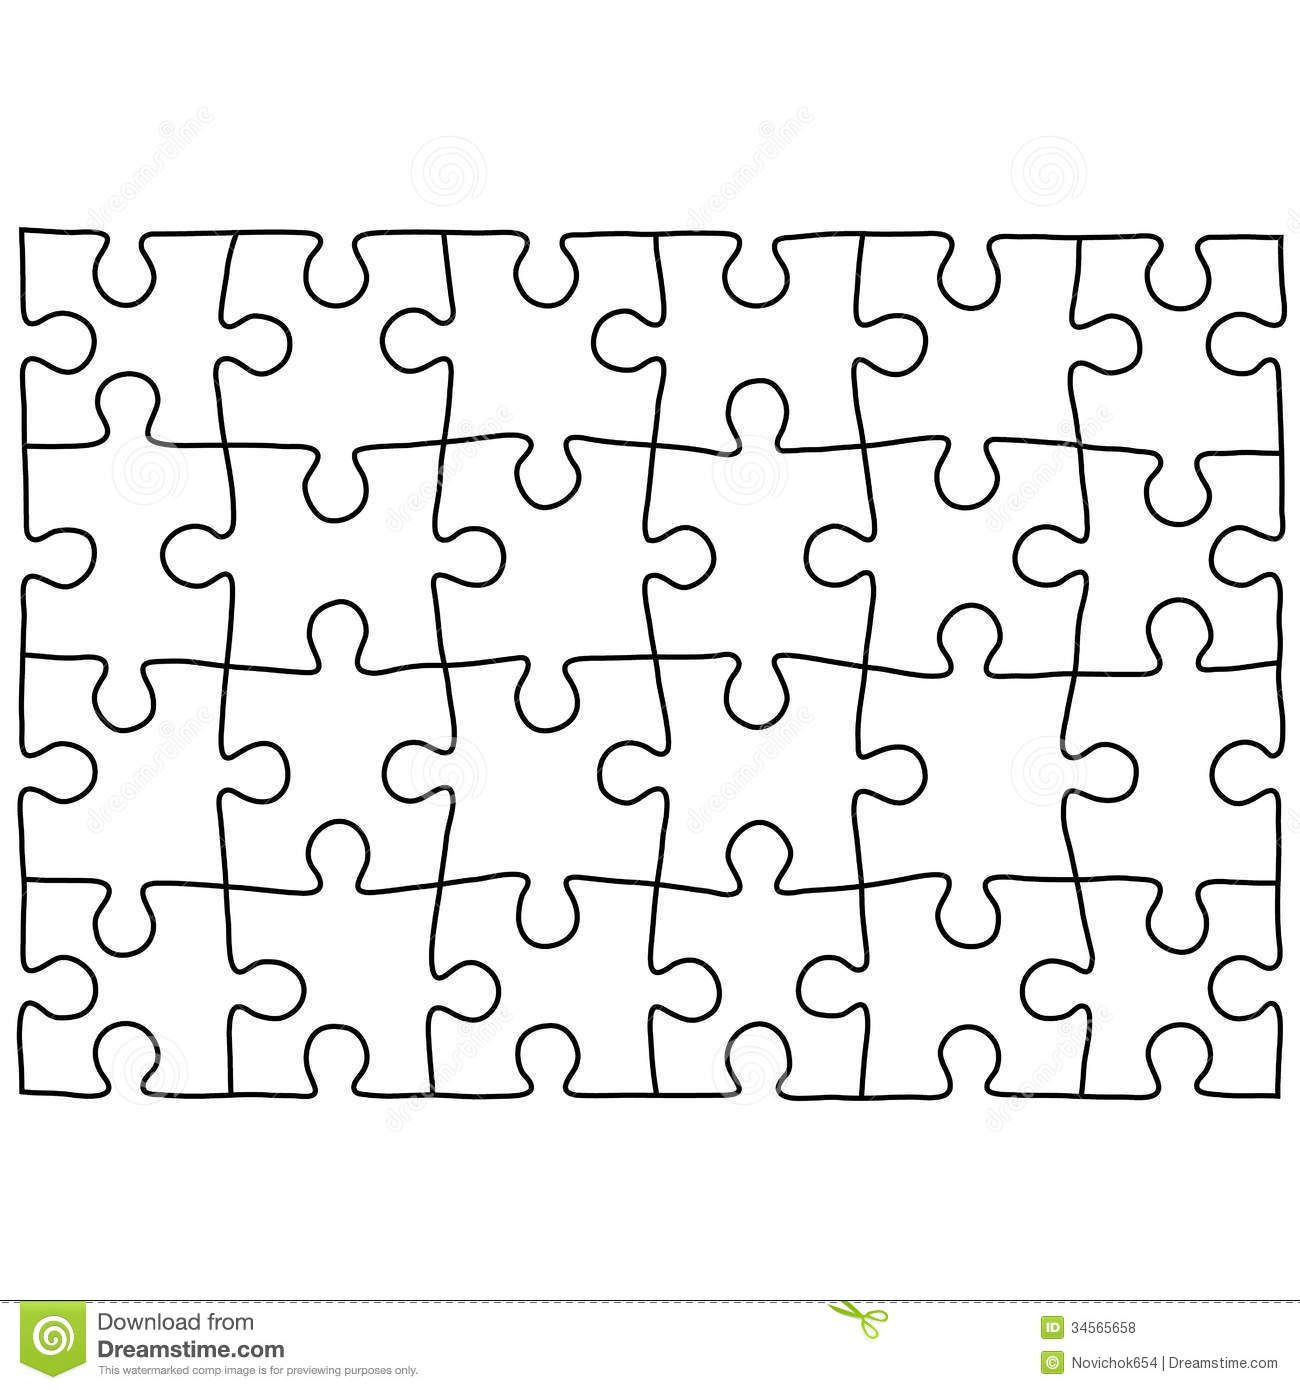 Jigsaw Puzzle Design Template | Free Puzzle Templates 1300.1390 - Printable Drawing Puzzles